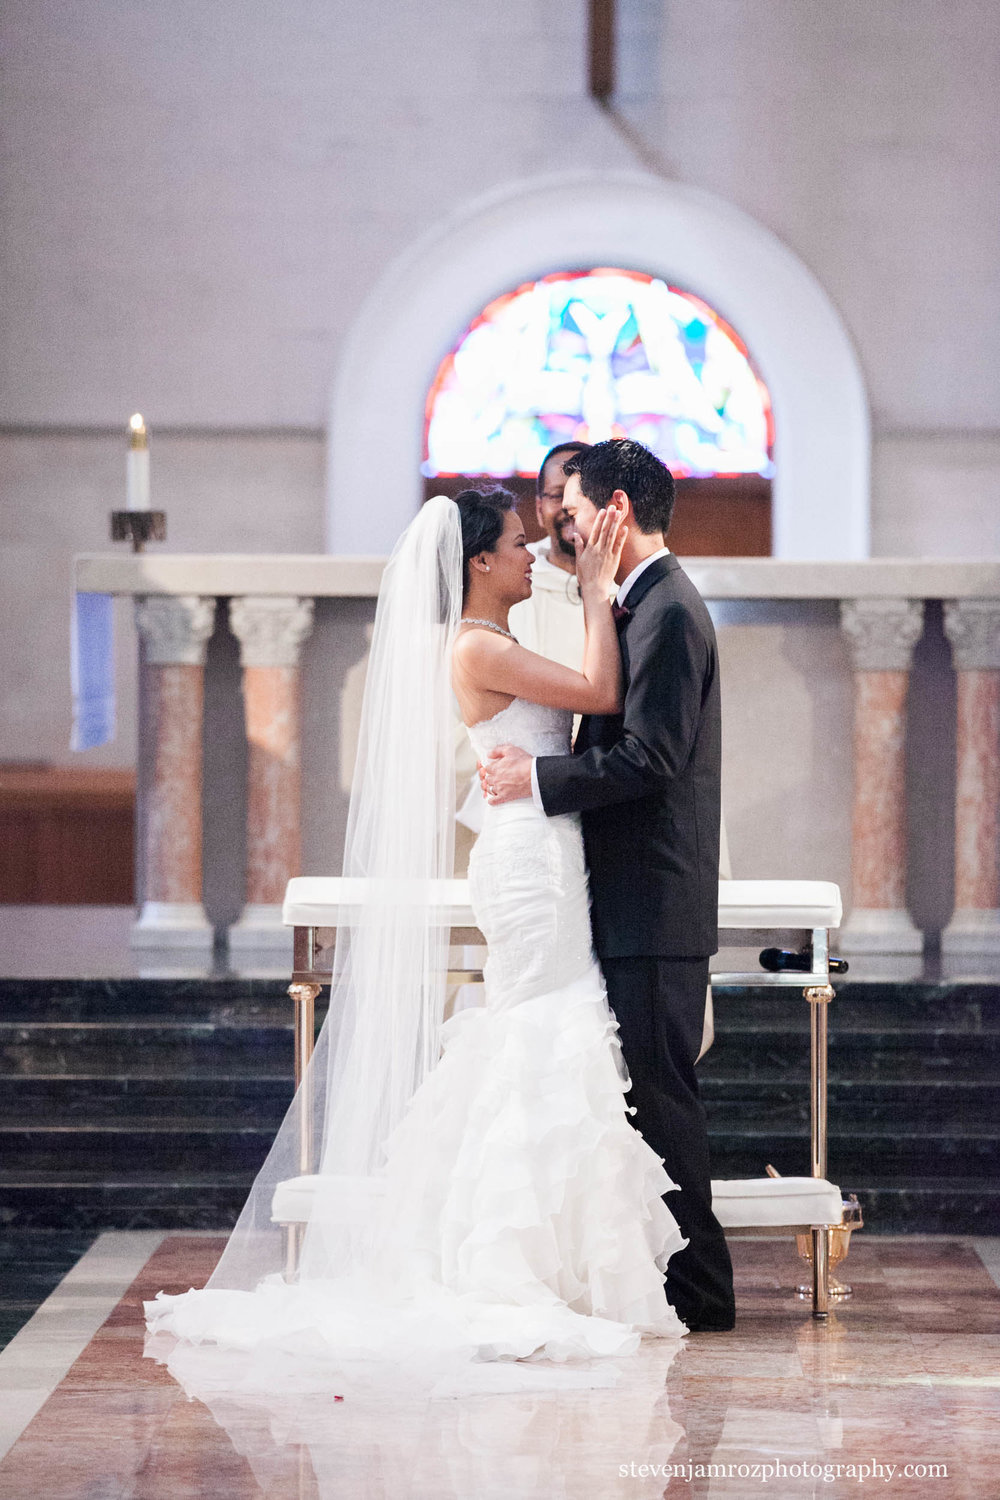 kiss-in-chapel-wedding-chapel-hill-steven-jamroz-photography-0233.jpg